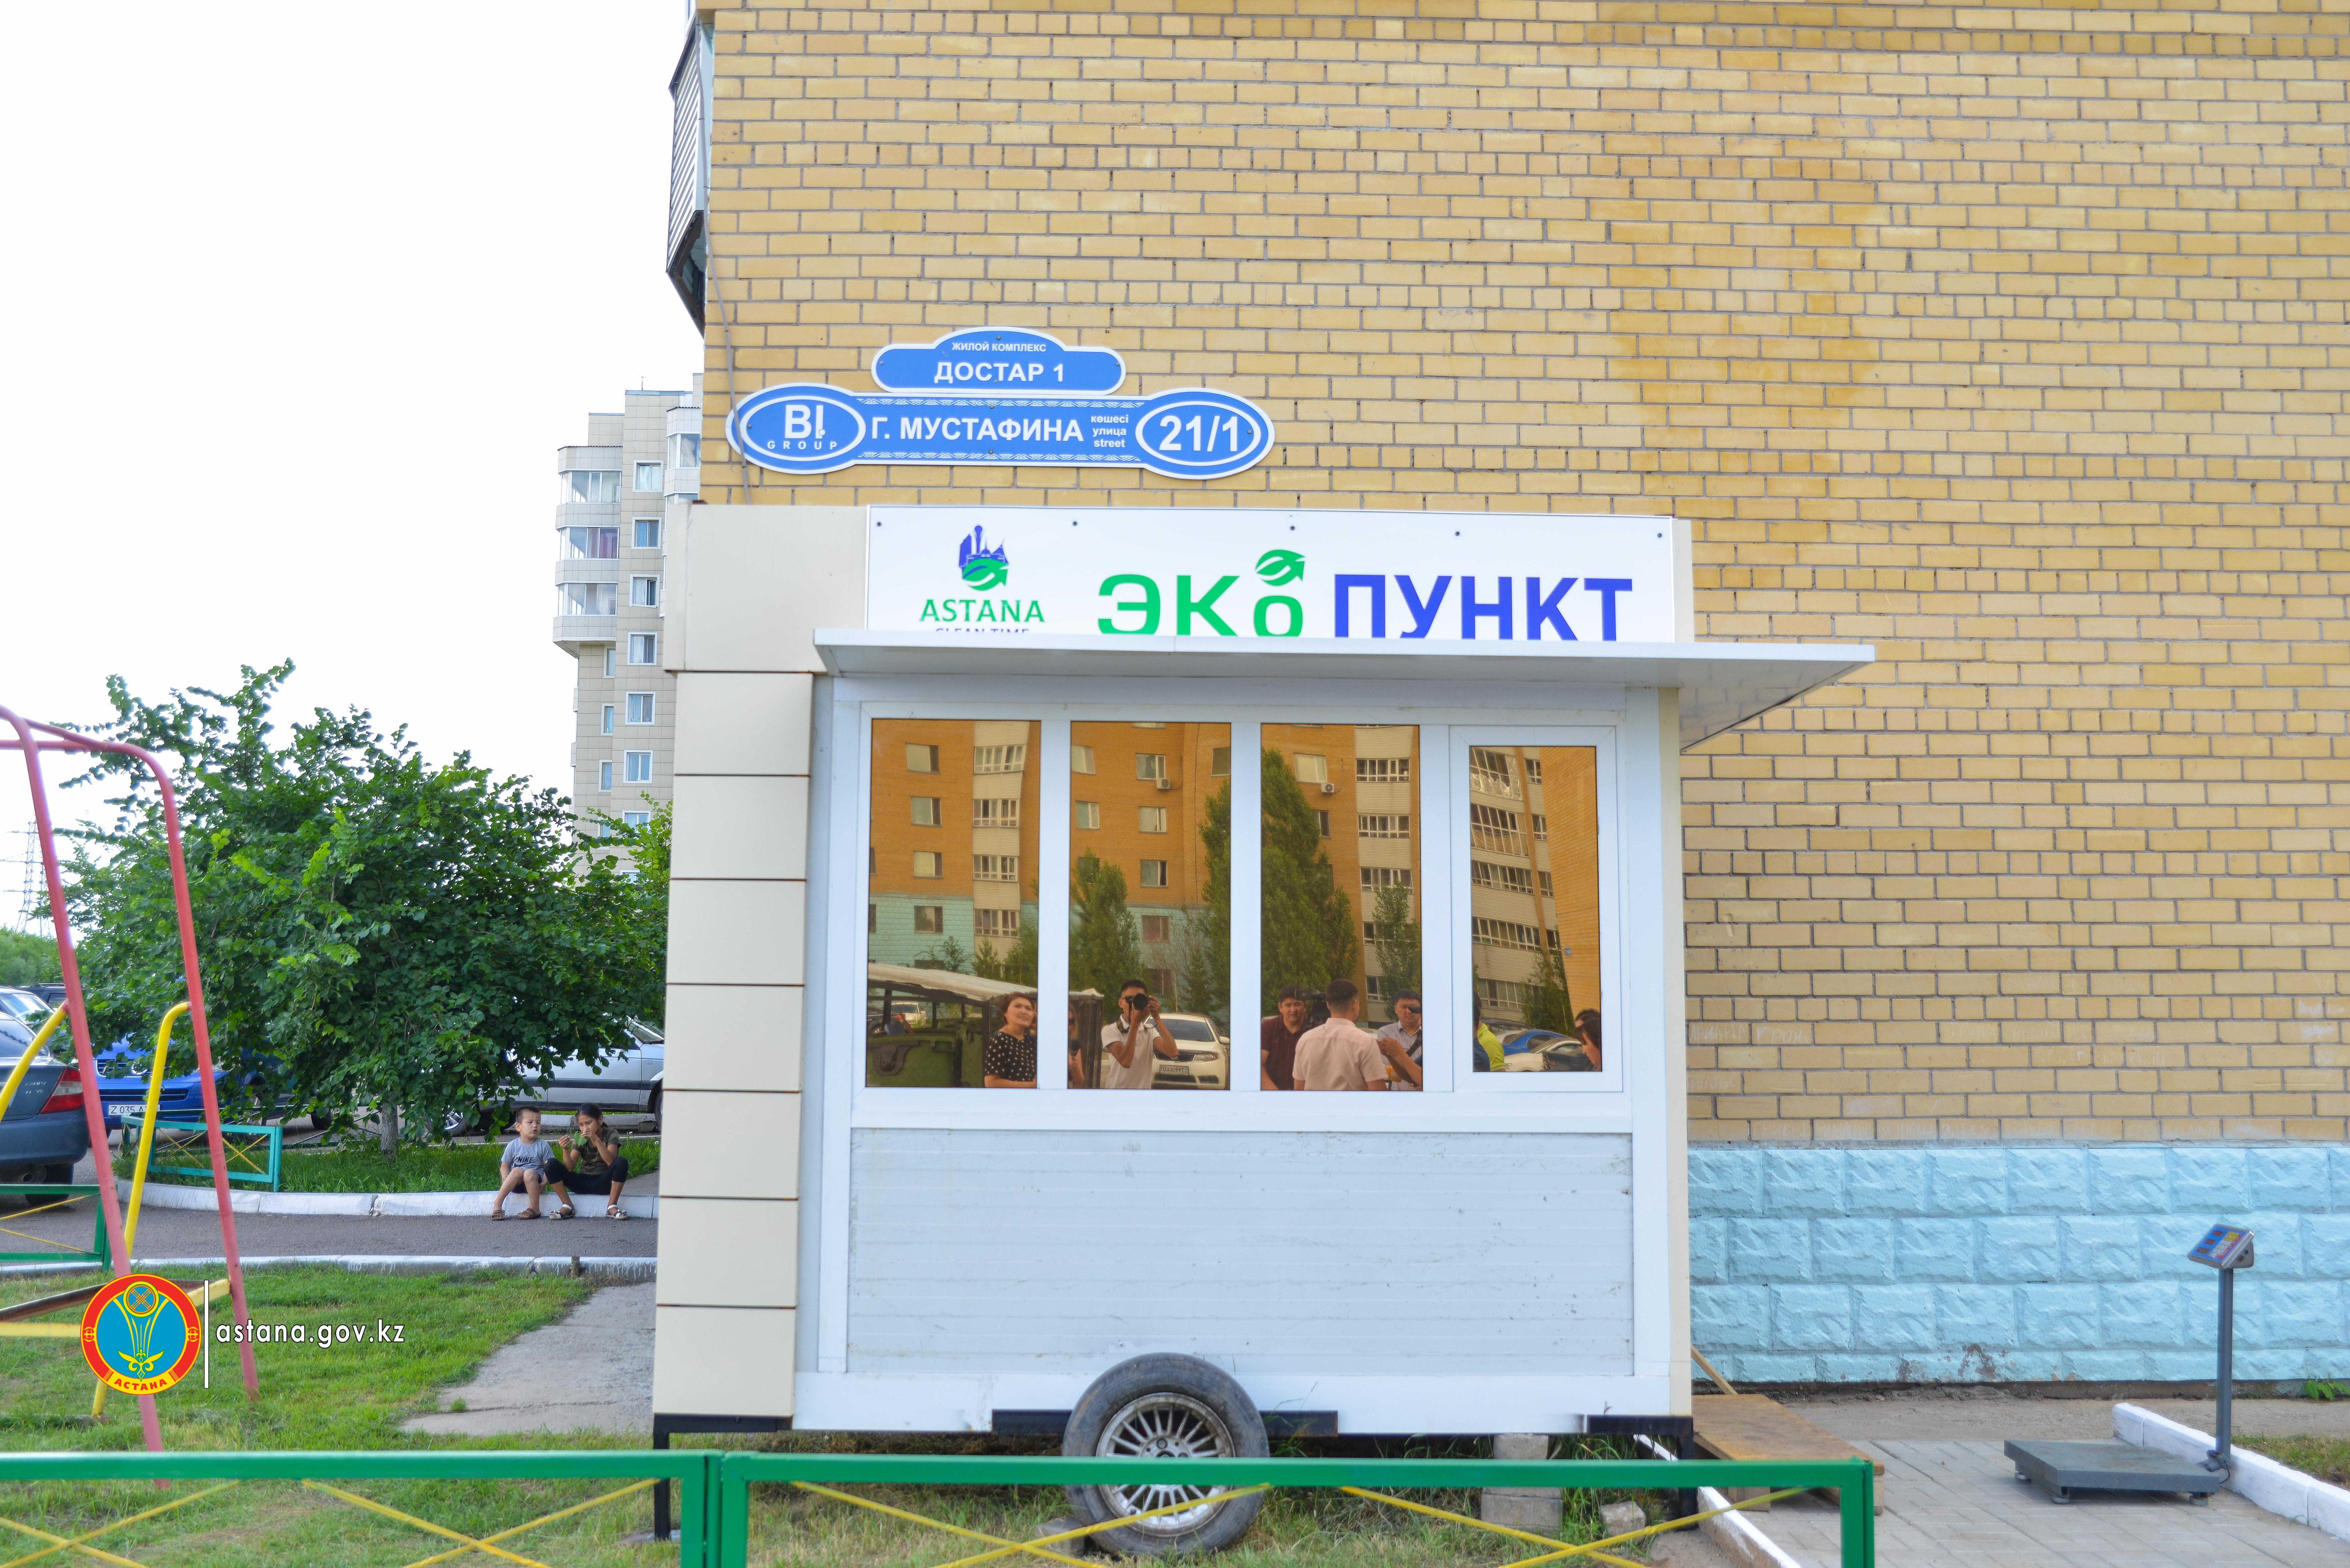 Bank Home Credit Kz Astana S Cash For Trash Programme Pays Residents For